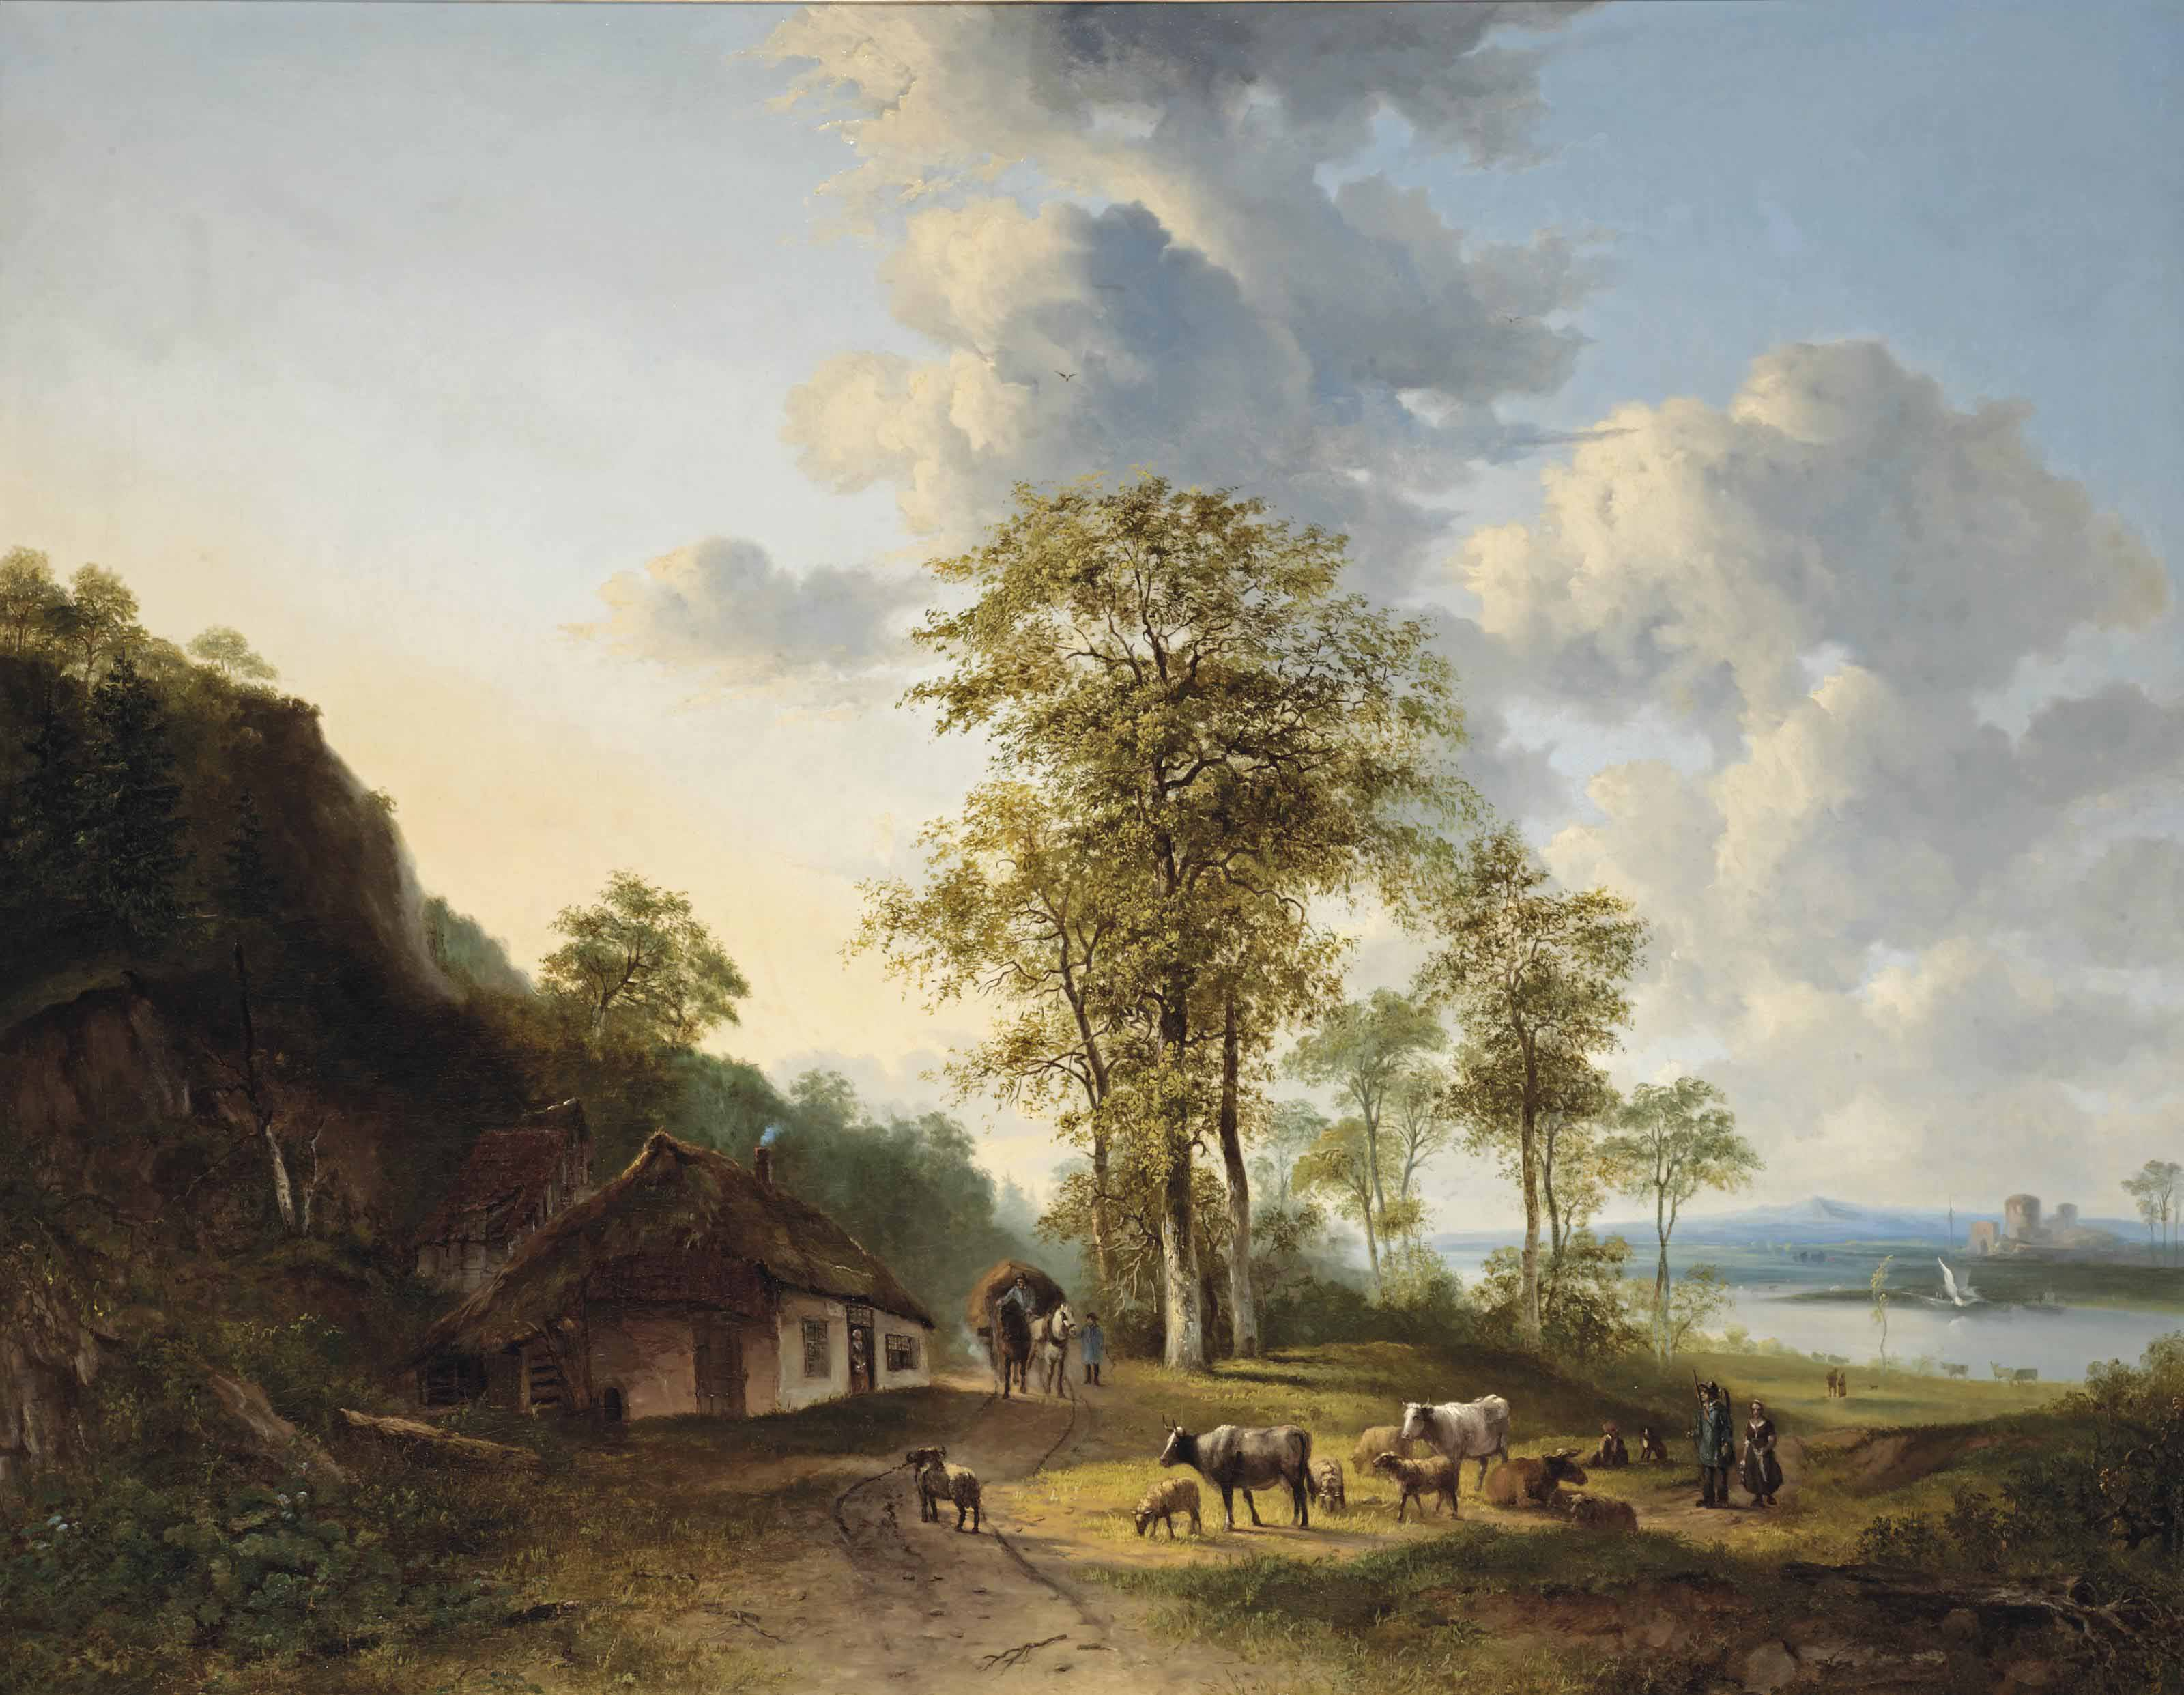 An extensive river landscape with farmers and cattle